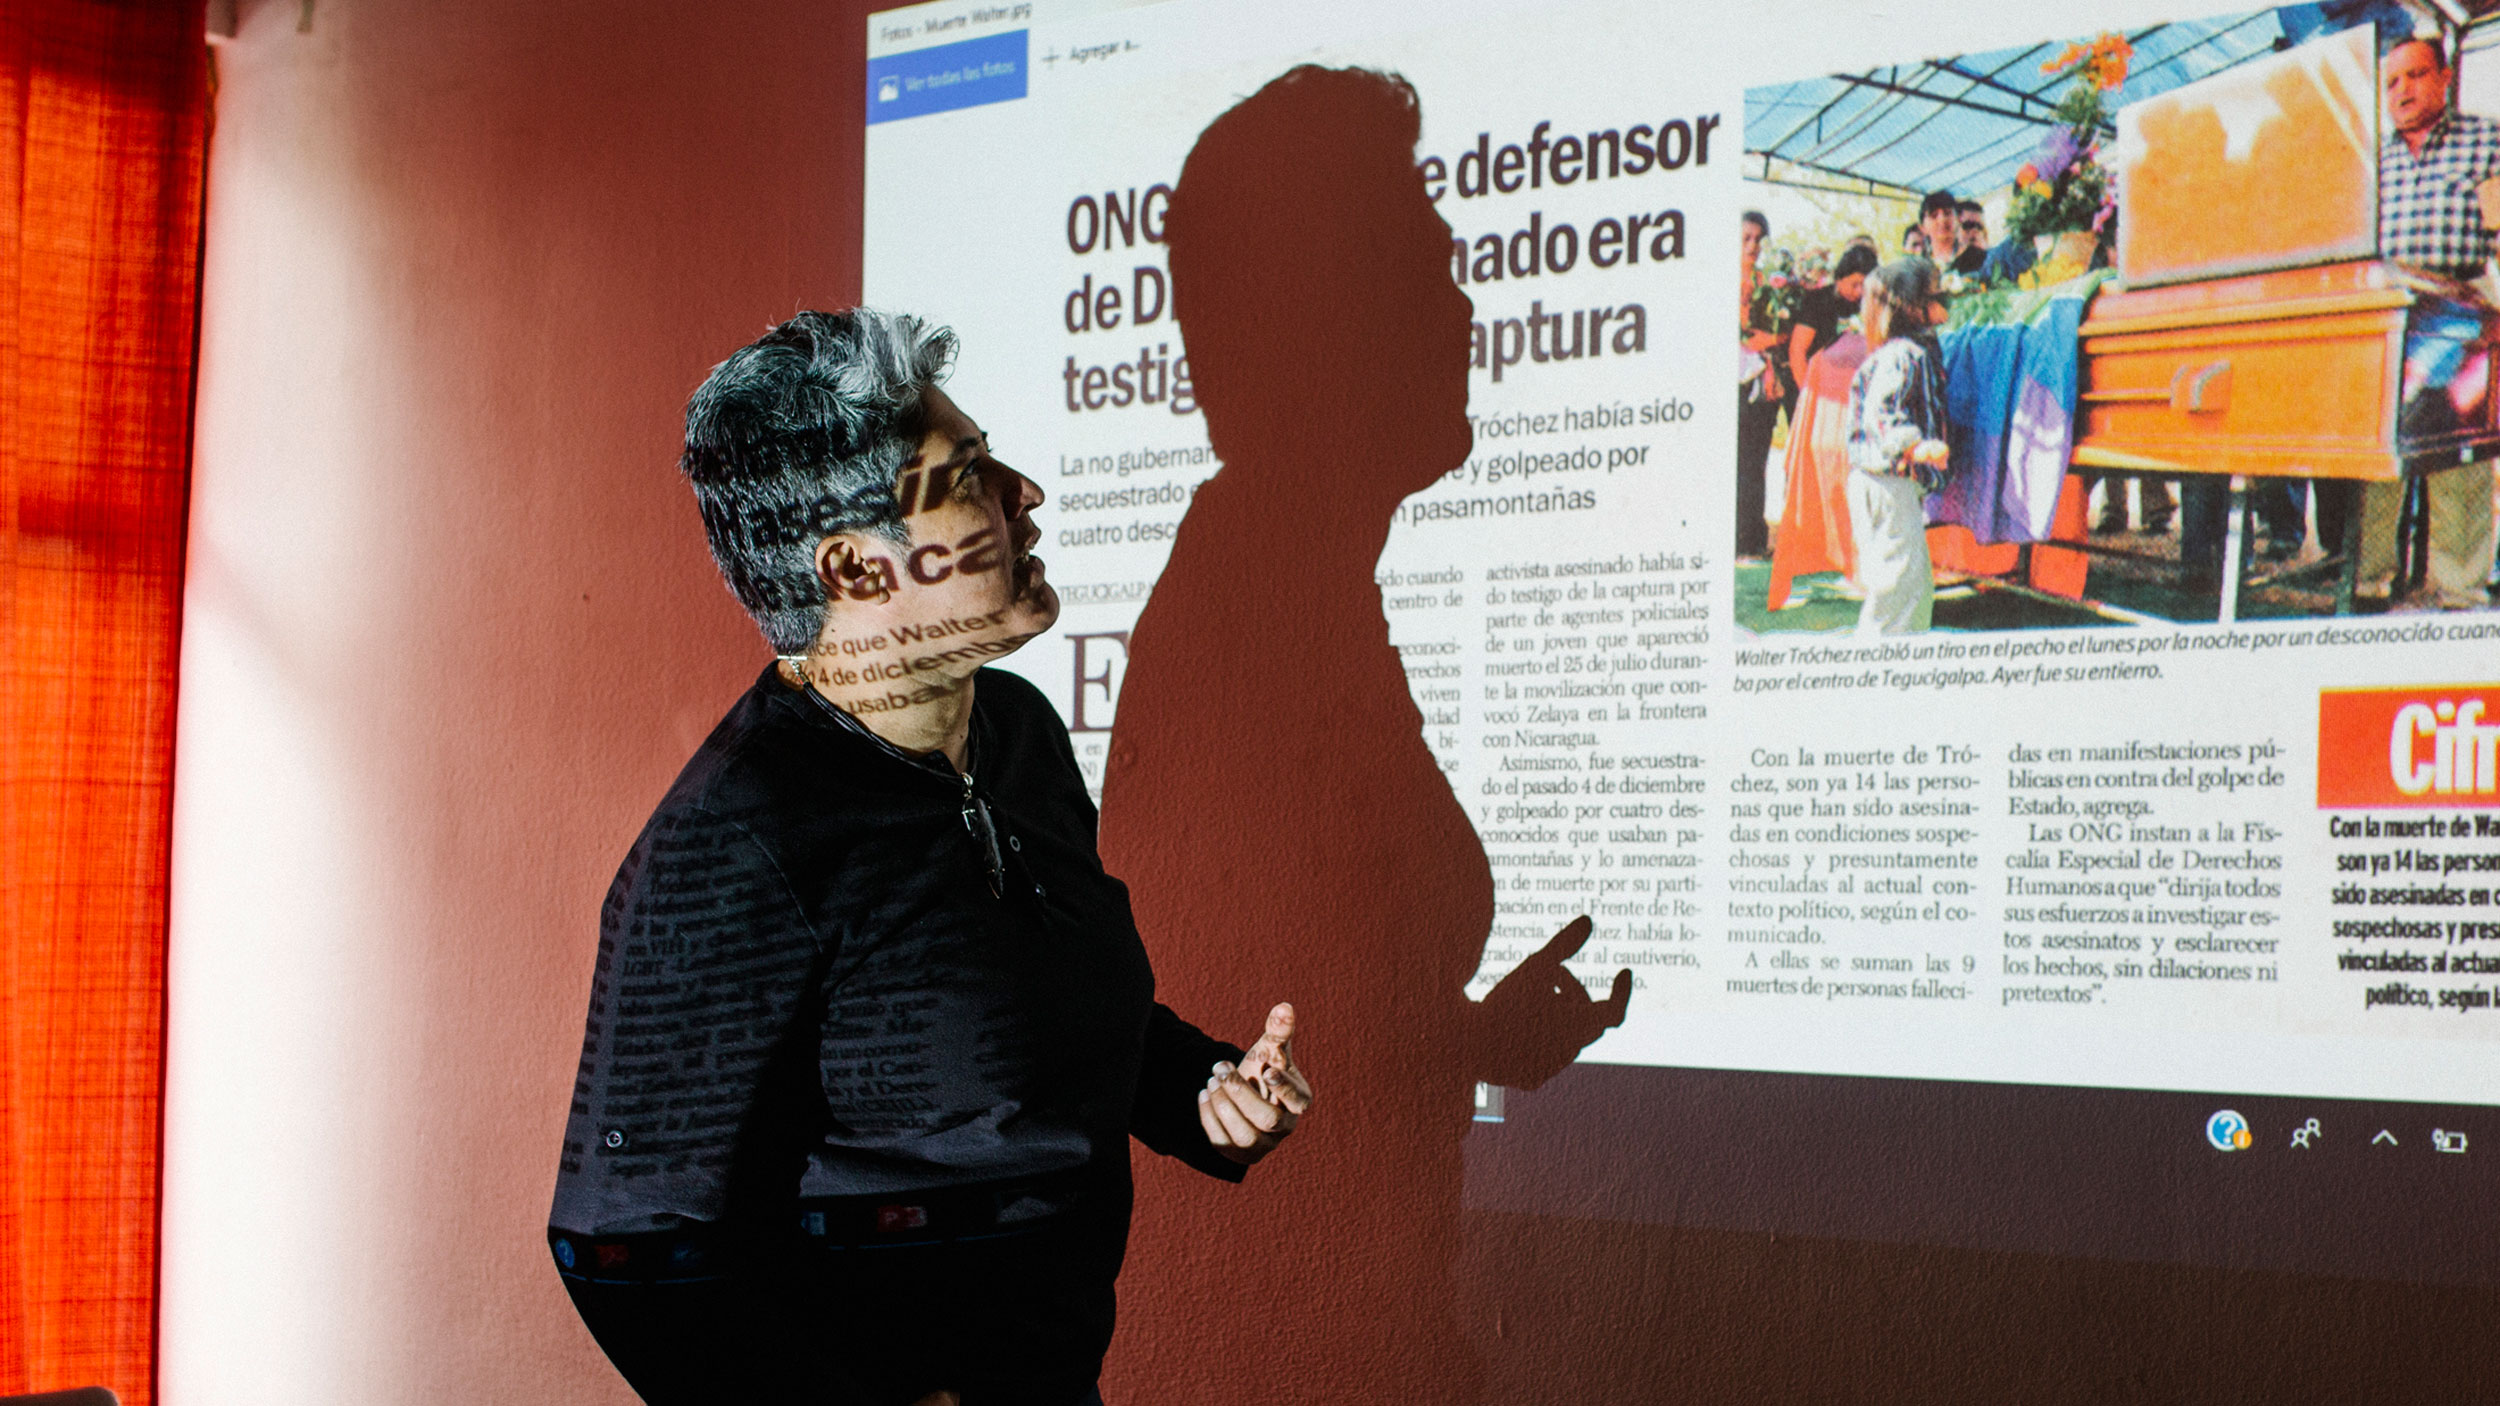 Indyra Mendoza is shown wearing a dark shirt and standing in front of a projector showing a news clipping.